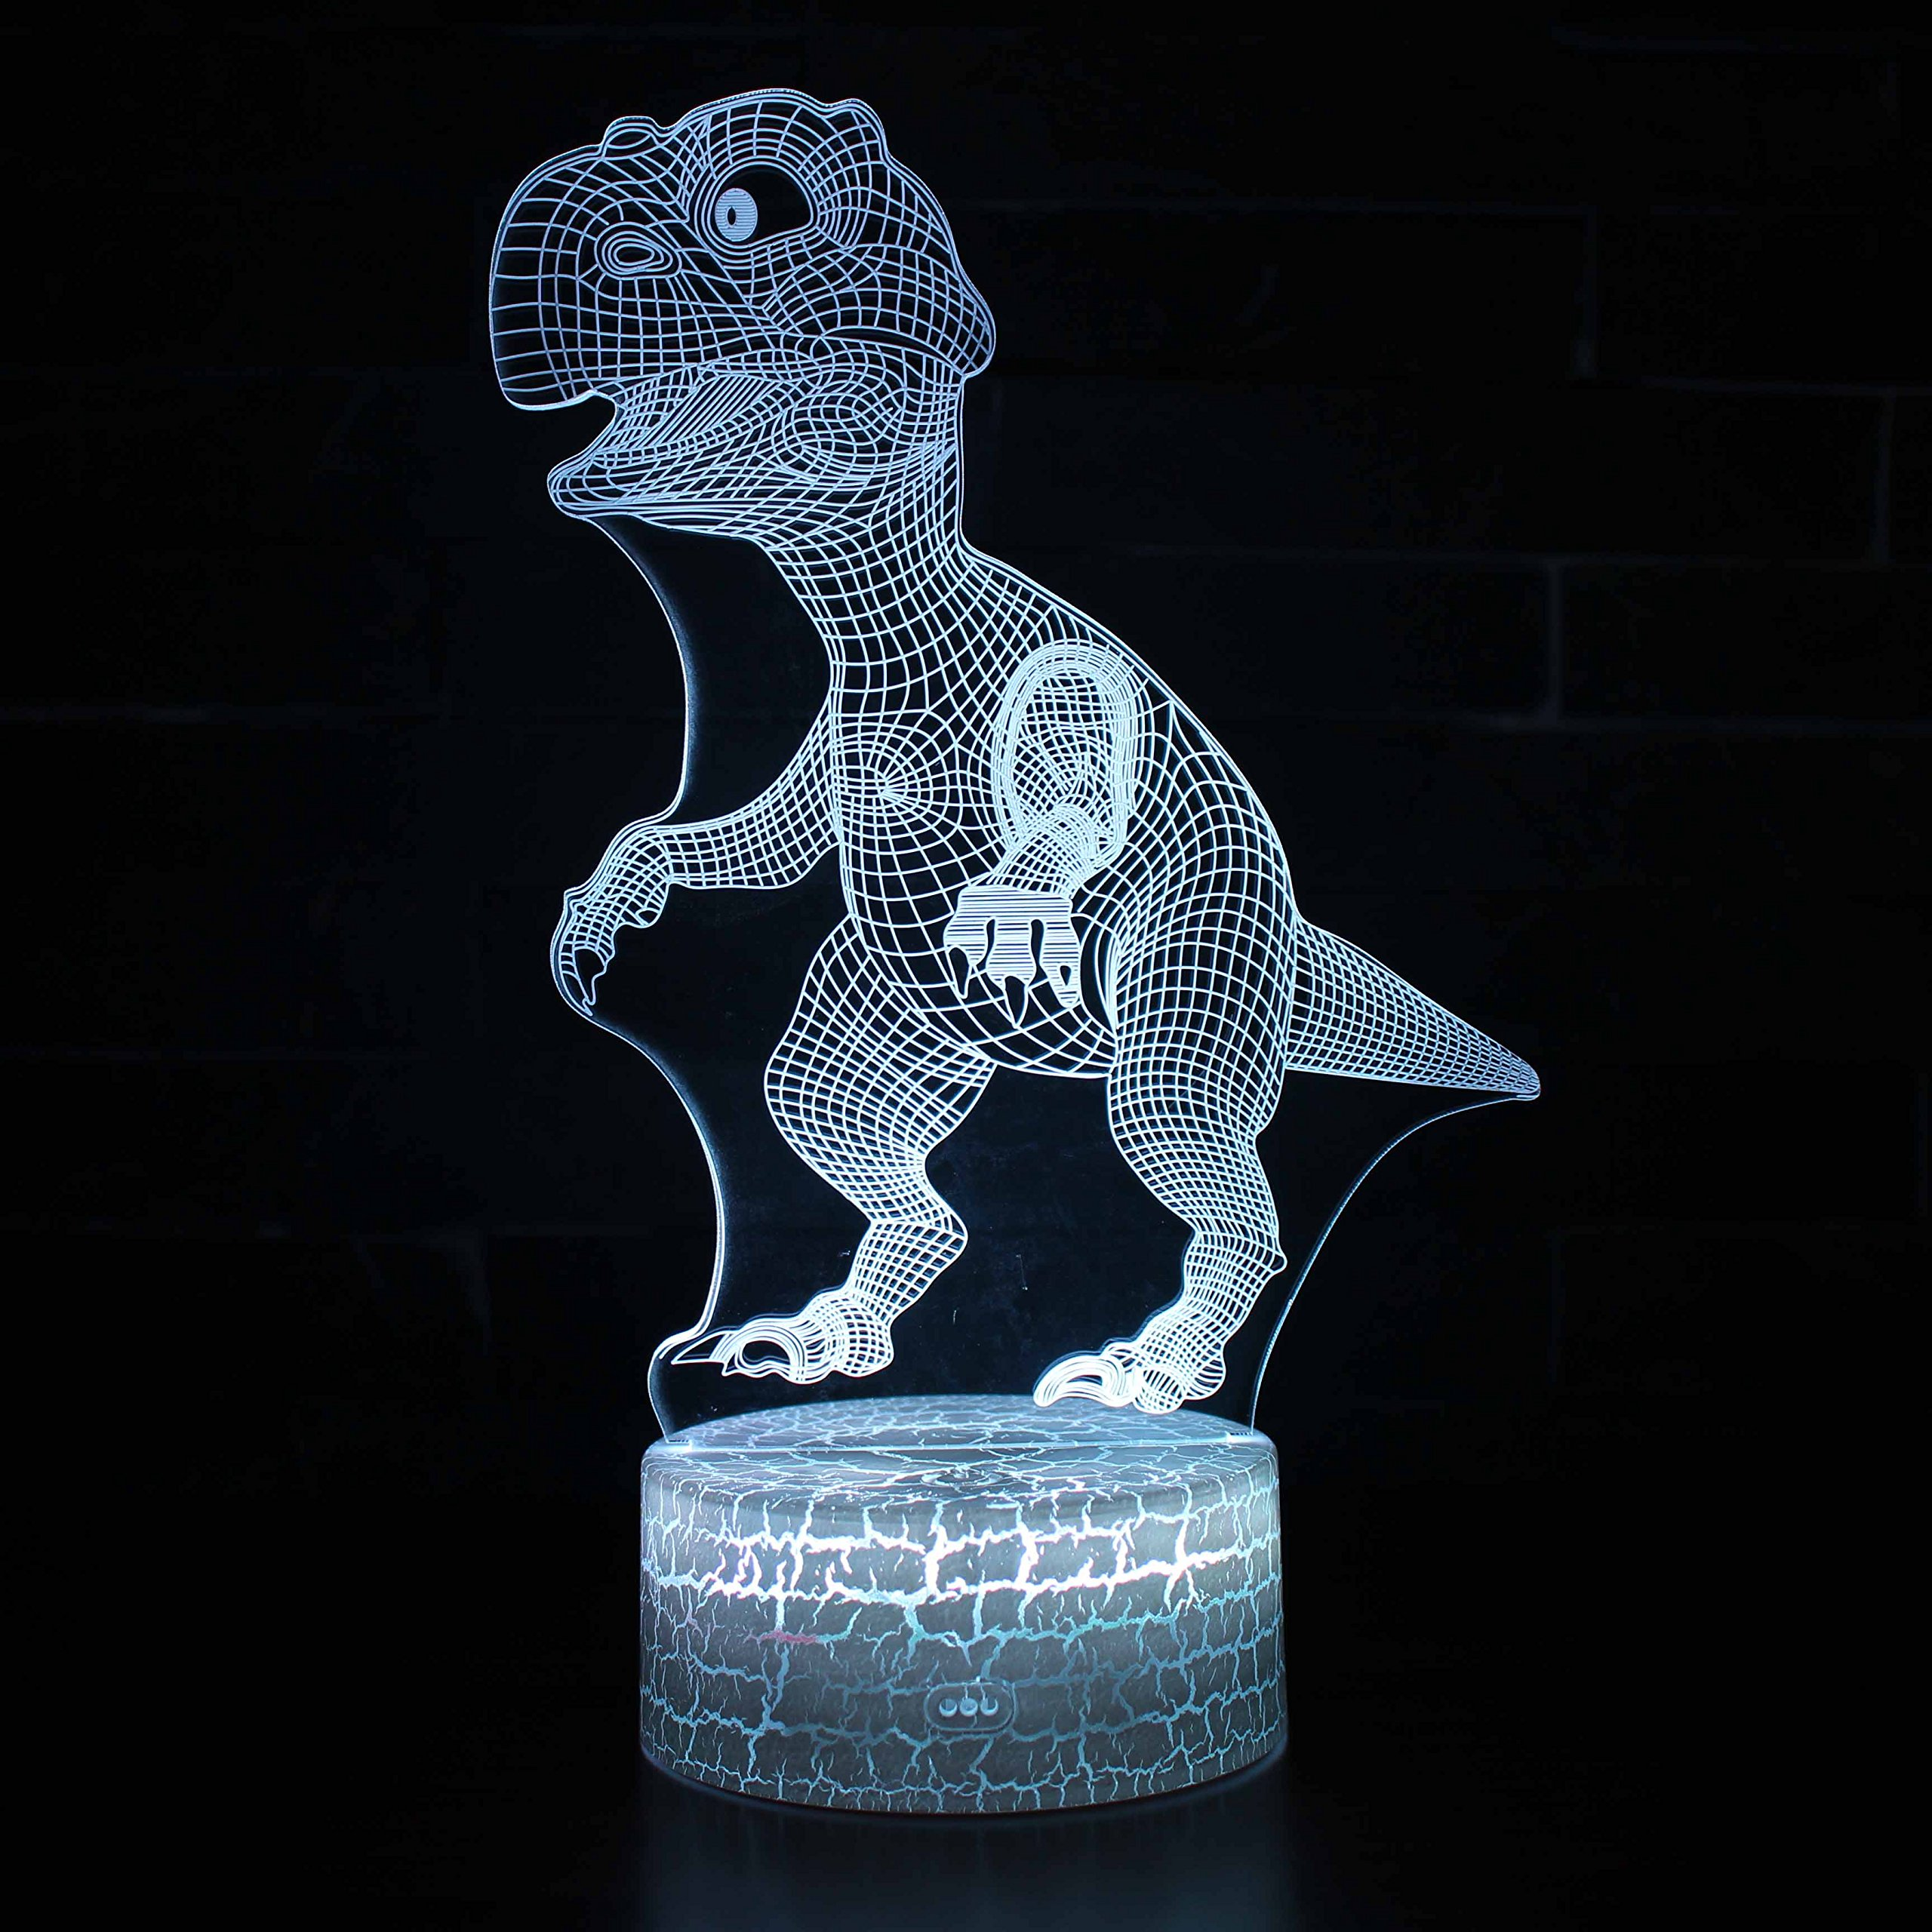 Borang Dinosaurs 3D Illusion Lamp Christmas Gift Night Lights Animal Light Led Desk Lamps Anniversary Gifts for Boys Kids Home Decor Office Bedroom Party Decorations Nursery Lighting 7 Color Crackle